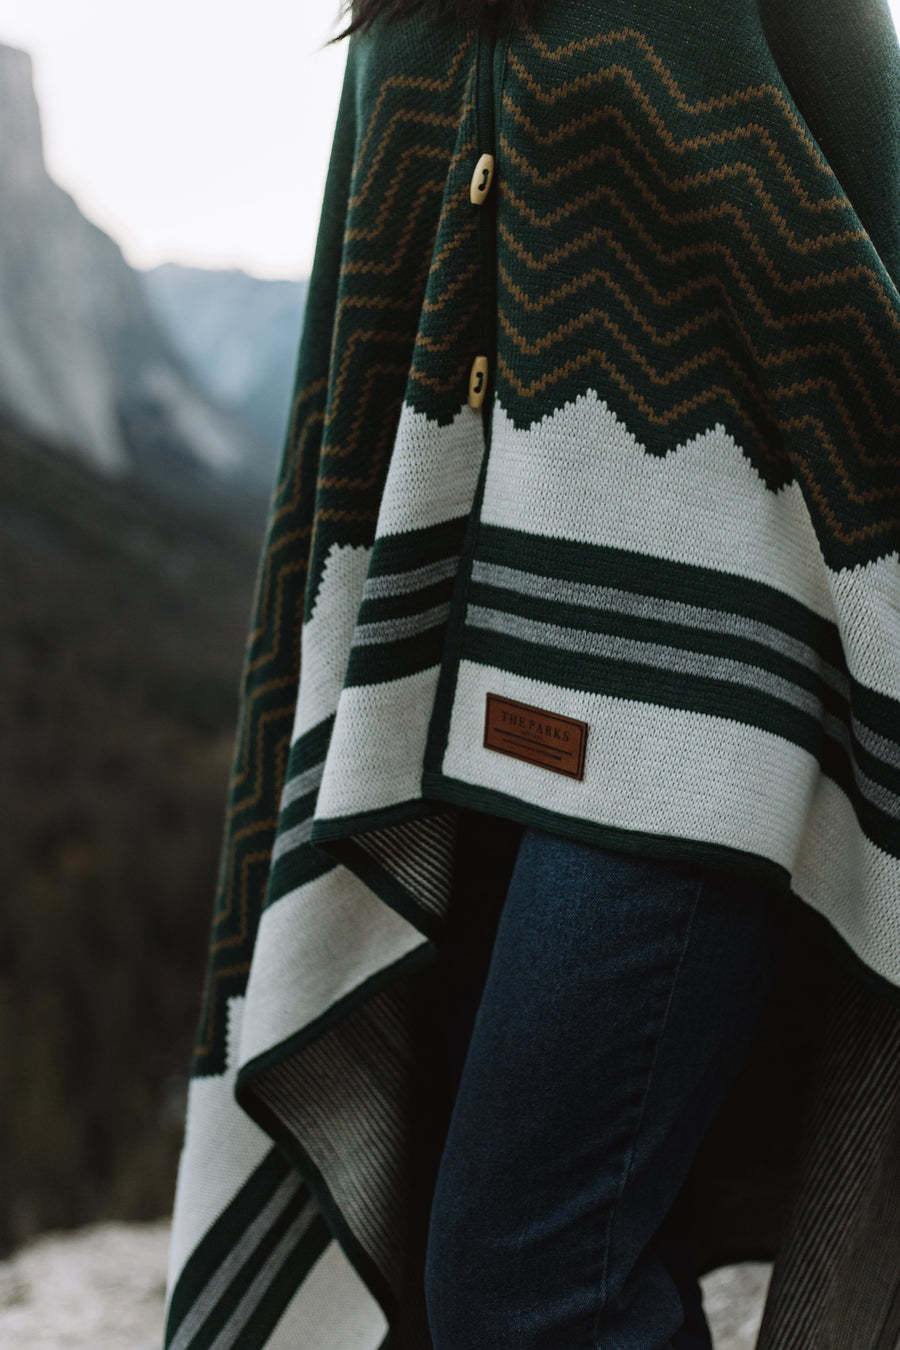 Explorer Wraparound Blanket // Coastal Pines Edition - Wondery, A Parks Apparel Brand